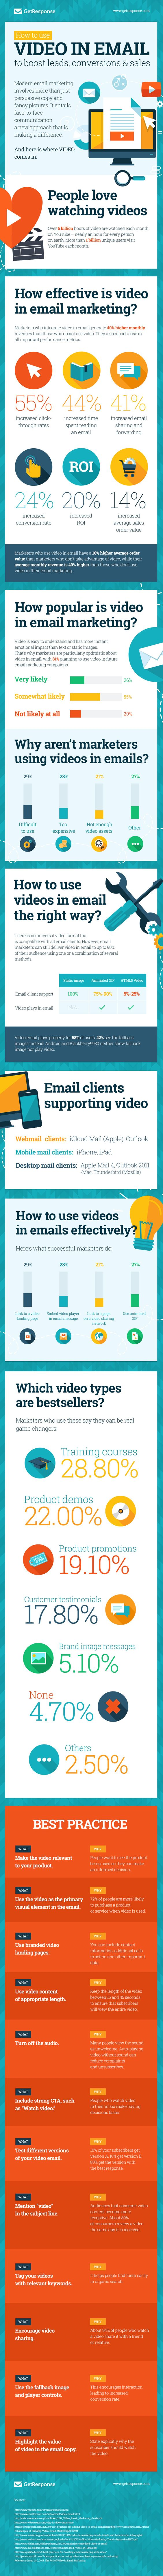 Video in Email Here is What You Need to Know | http://socialmouths.com/blog/2014/07/08/video-in-email/